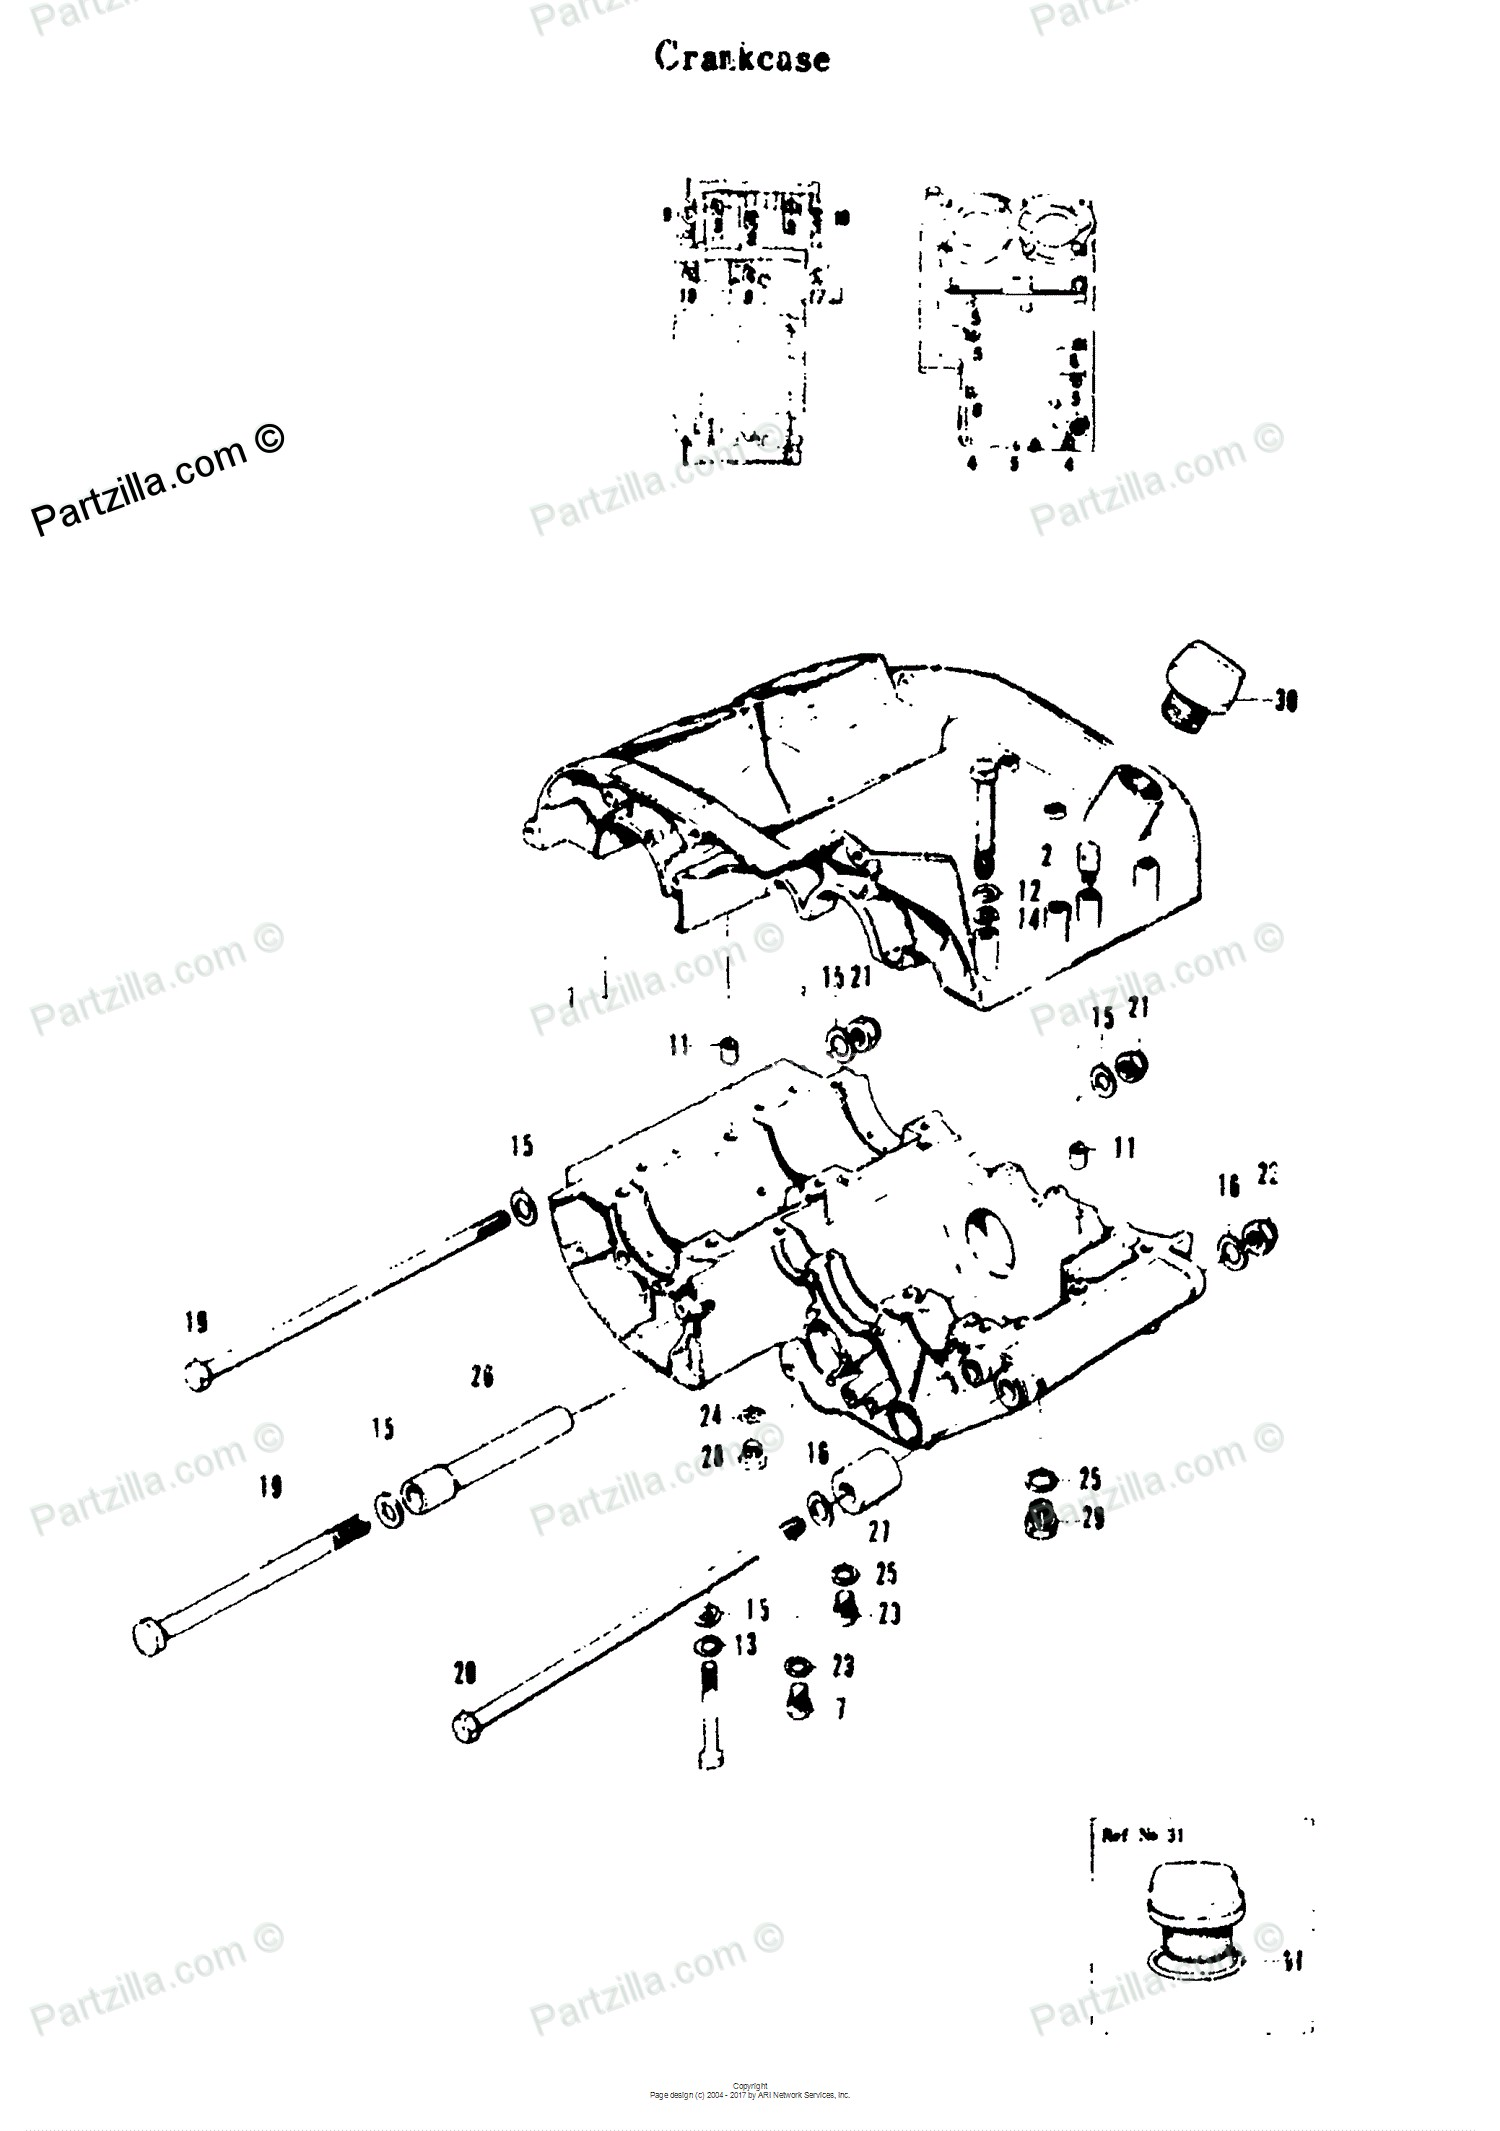 Motorcycle Engine Parts Diagram Suzuki Motorcycle 1969 Oem Parts Diagram for Crankcase Partzilla Of Motorcycle Engine Parts Diagram